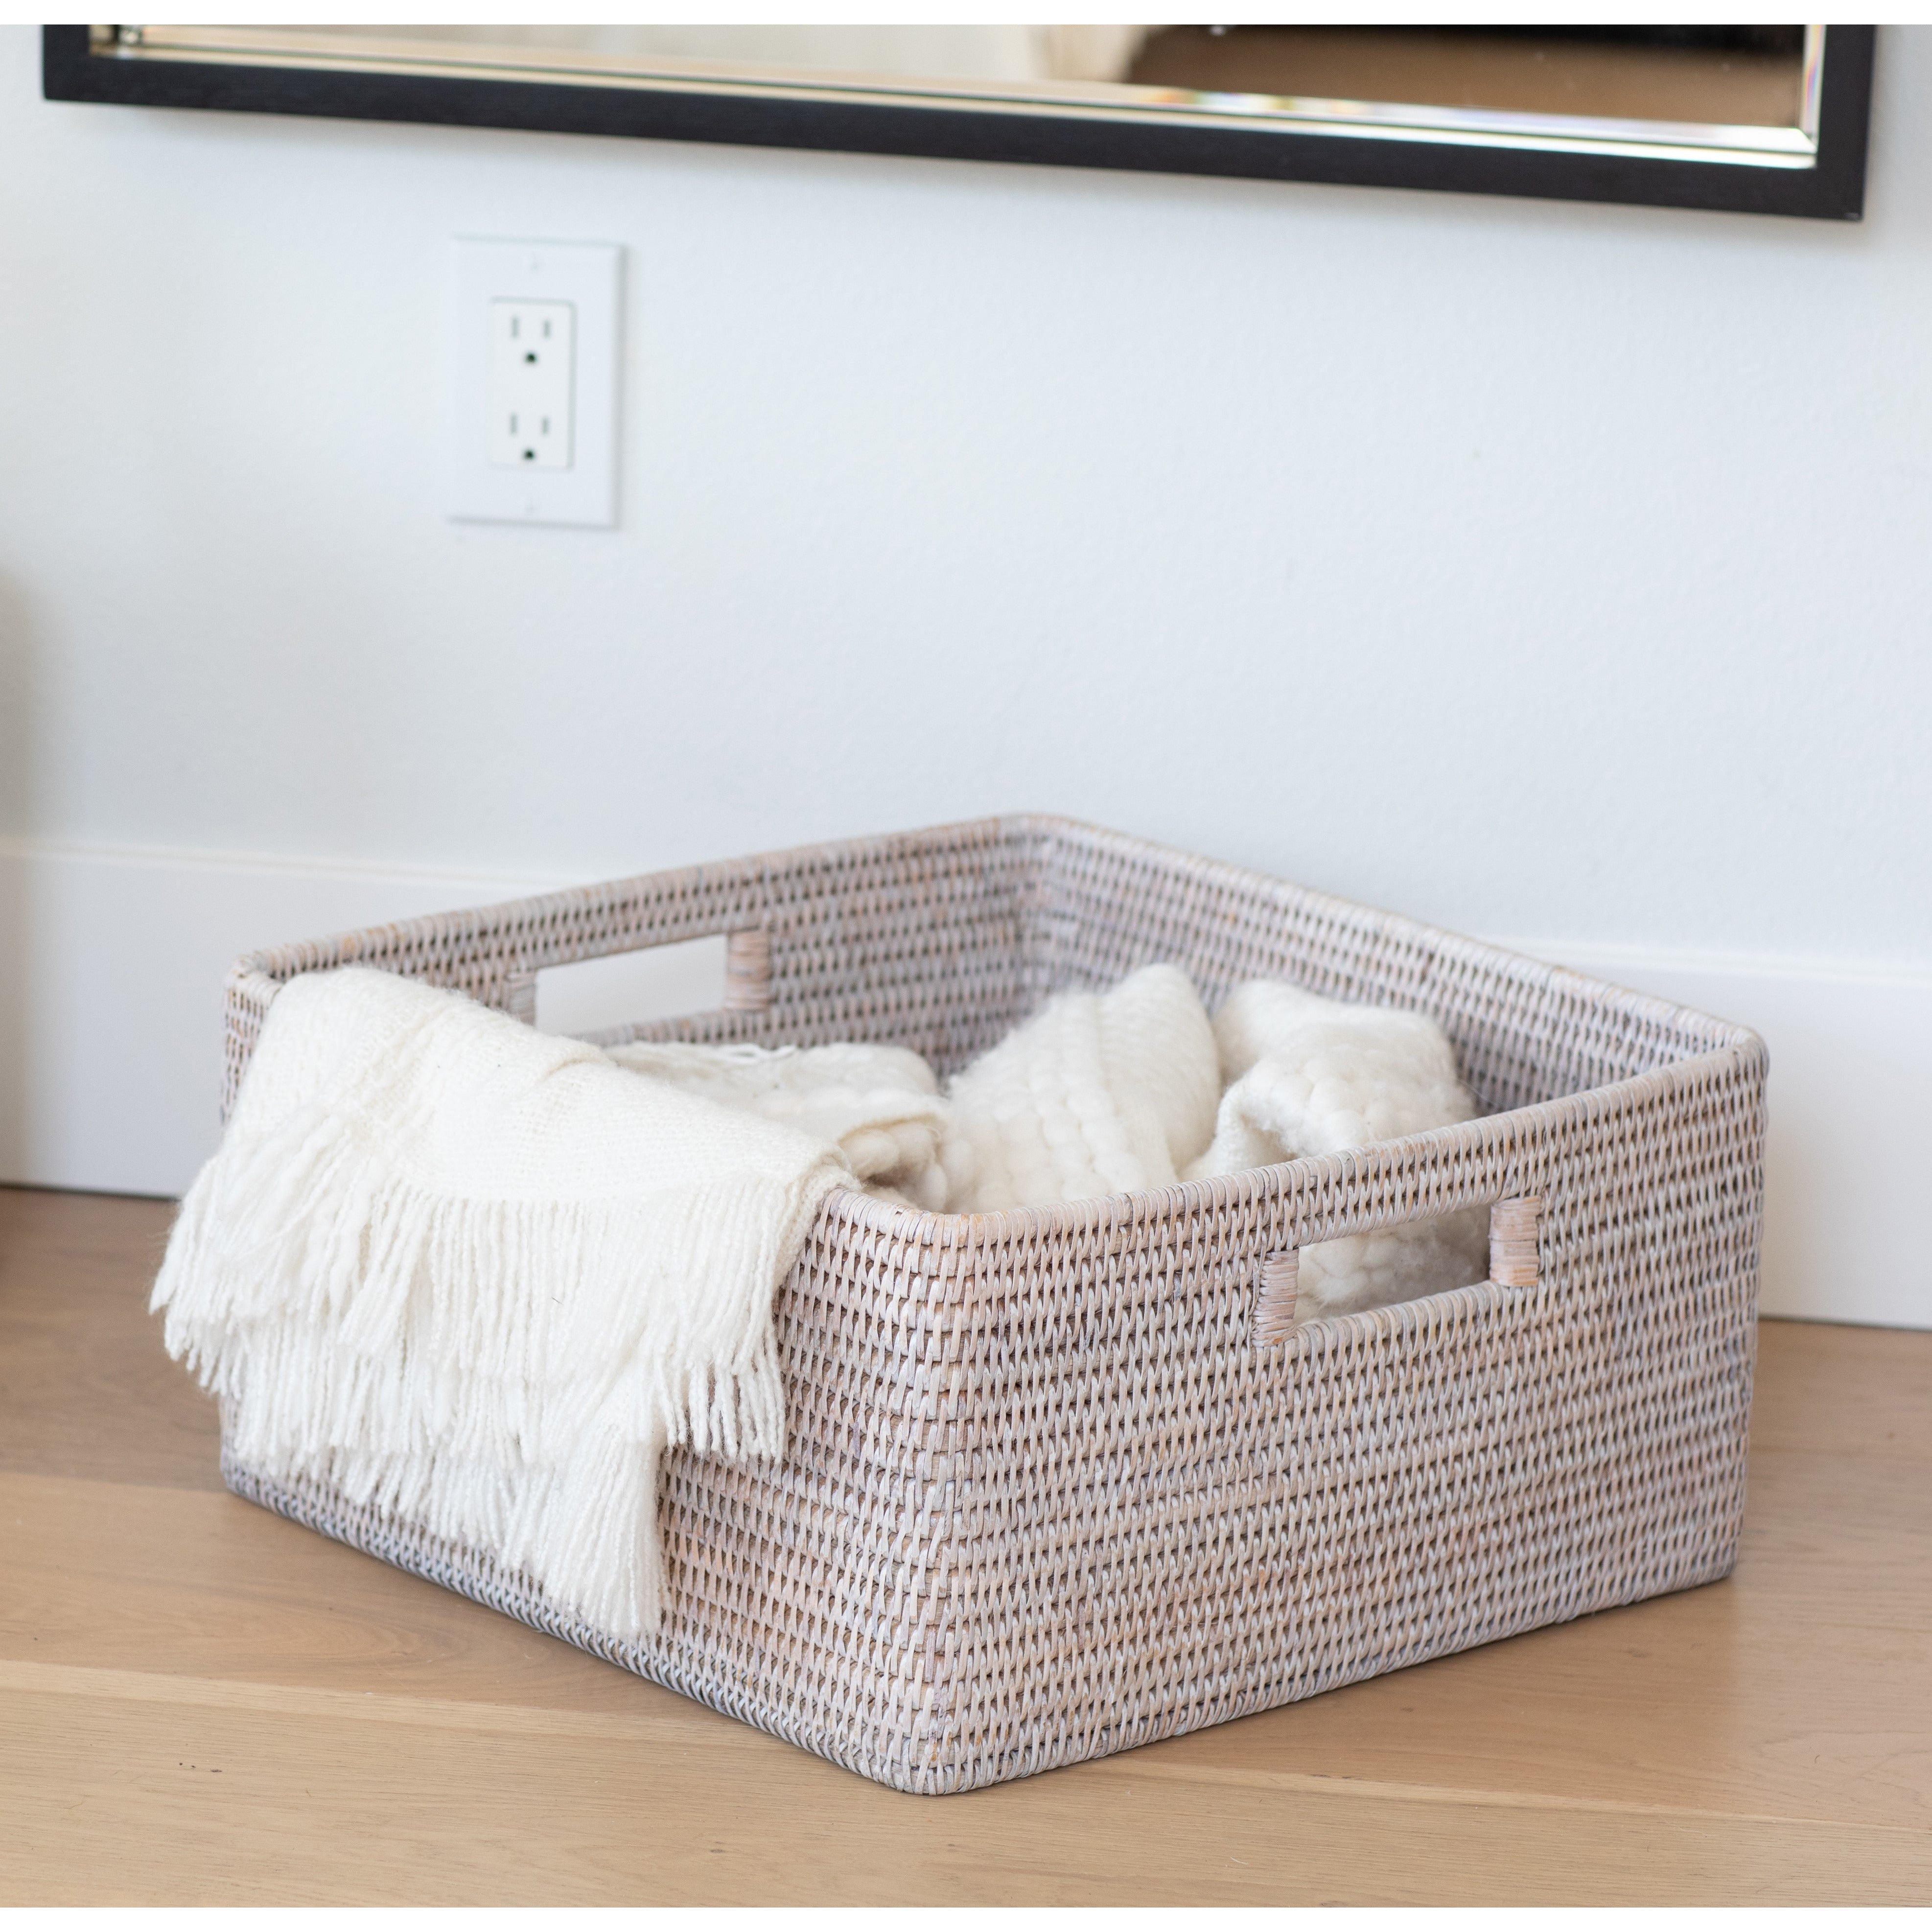 Square storage basket with rounded corners white wash